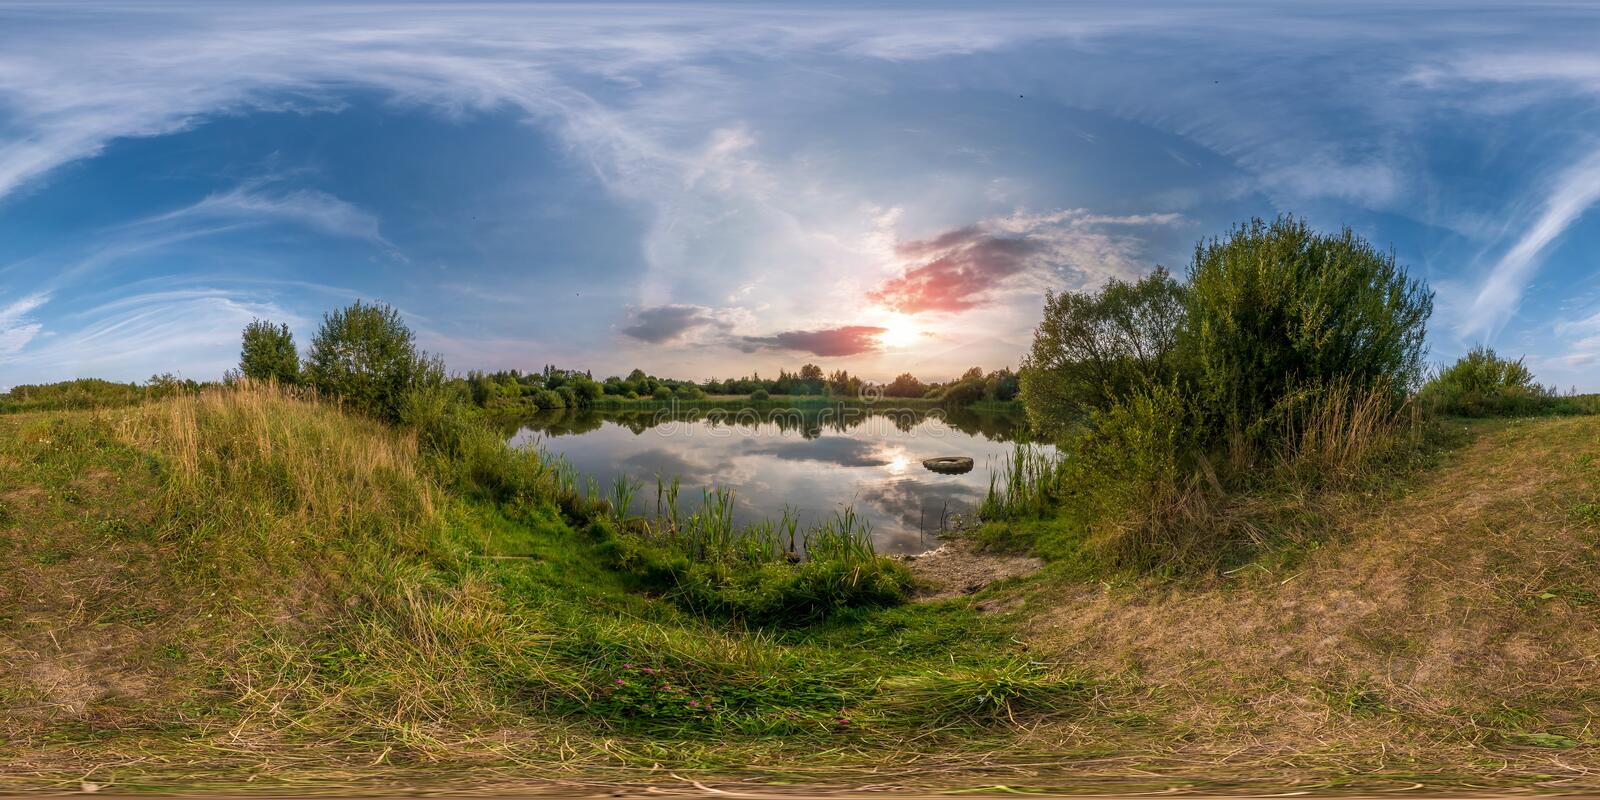 Full seamless spherical panorama 360 by 180 angle view on the shore of small lake in sunny summer evening with awesome clouds in stock image